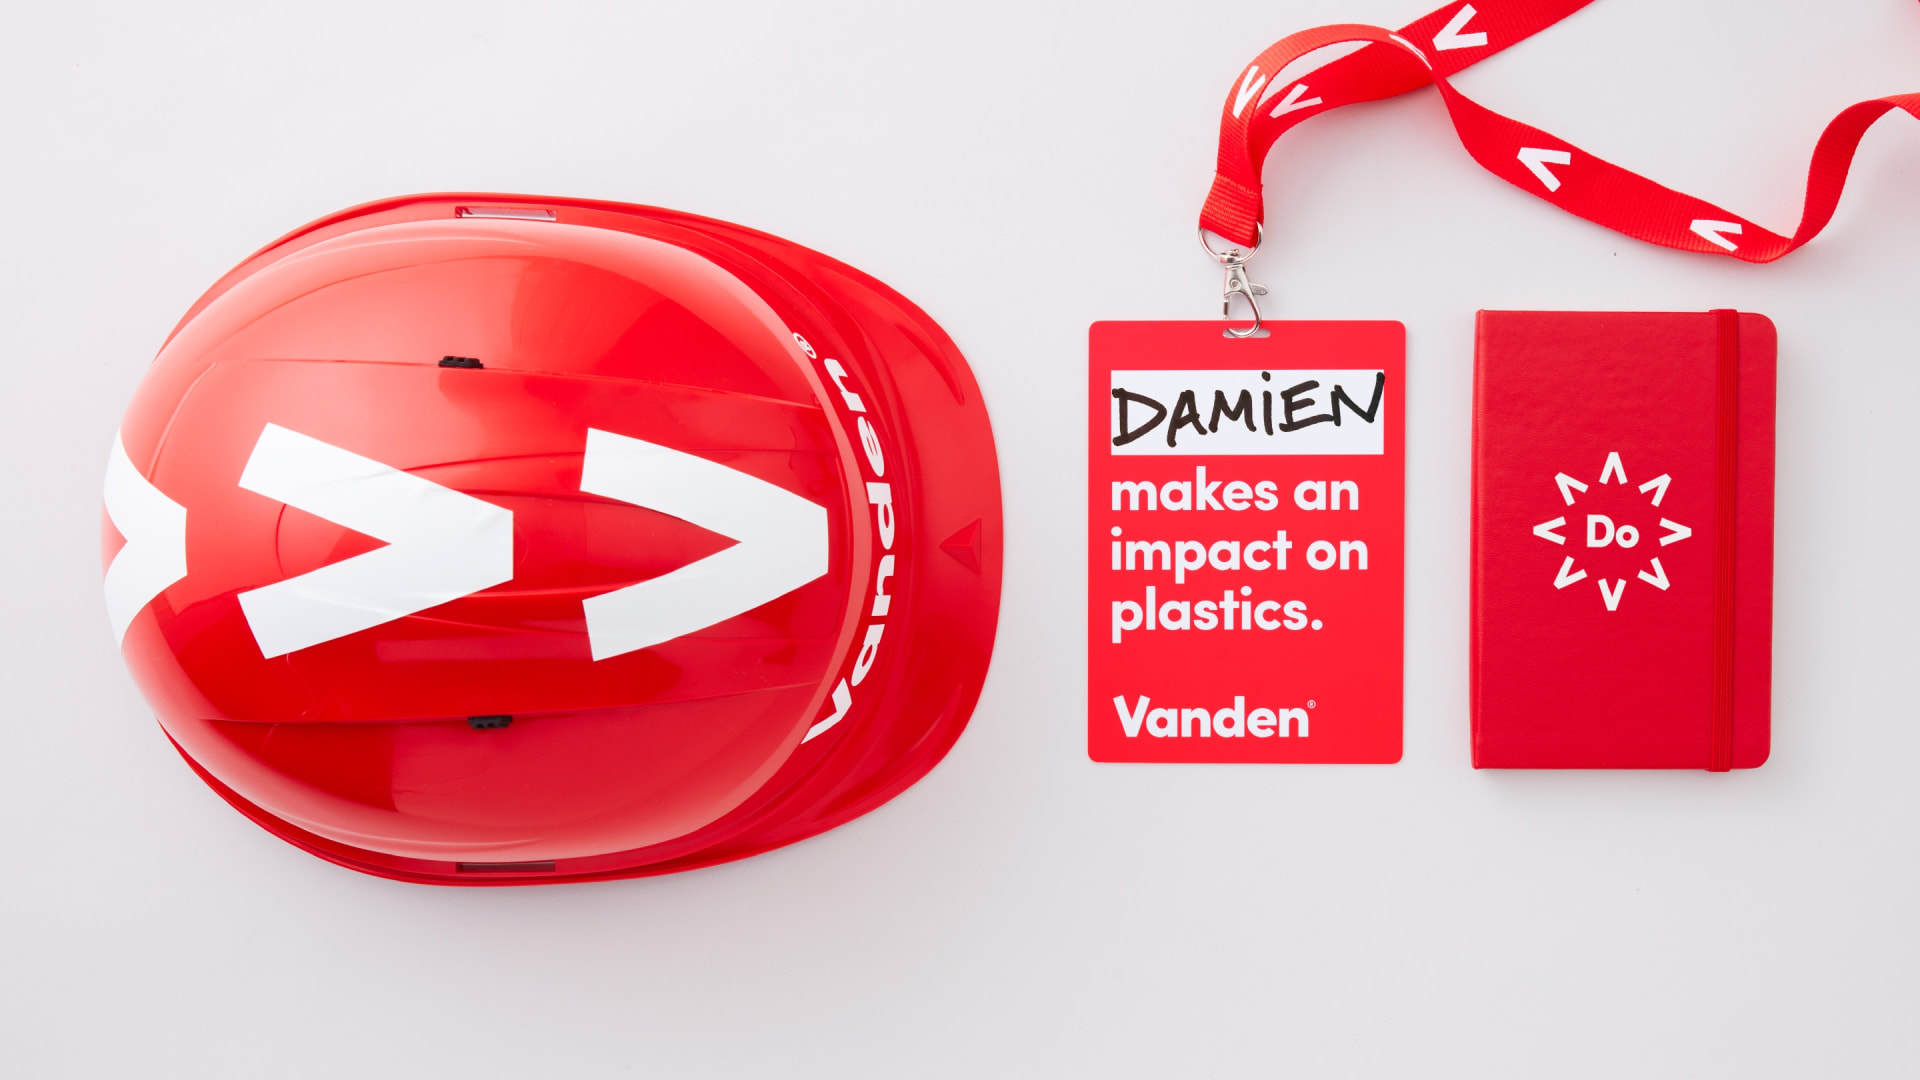 Vanden recycling identity application